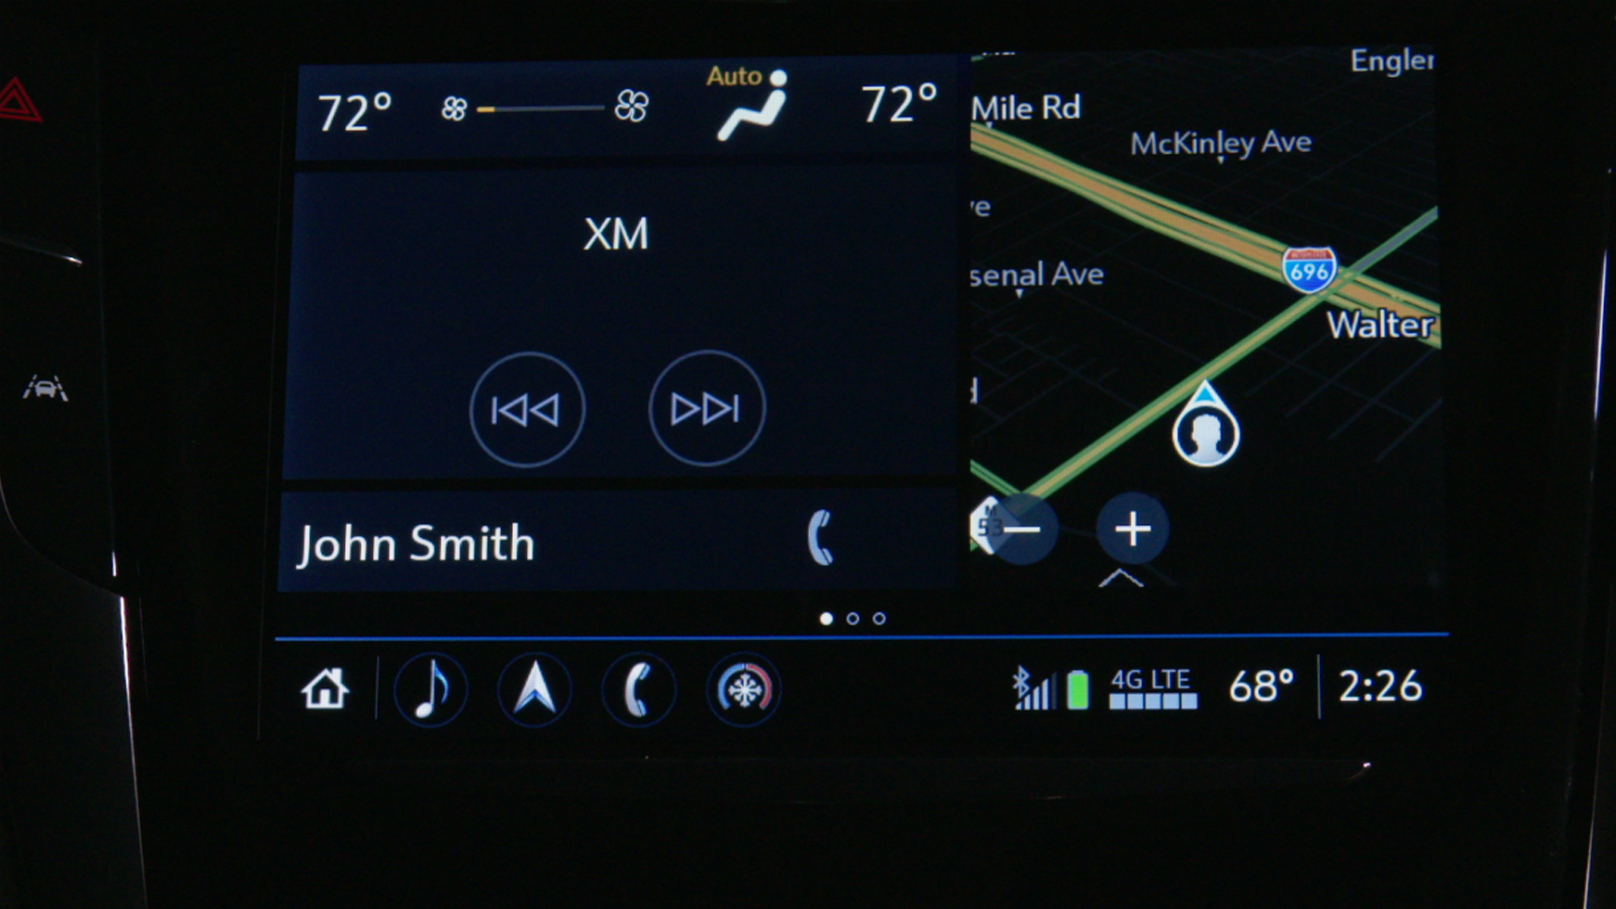 Cadillac CTS interface